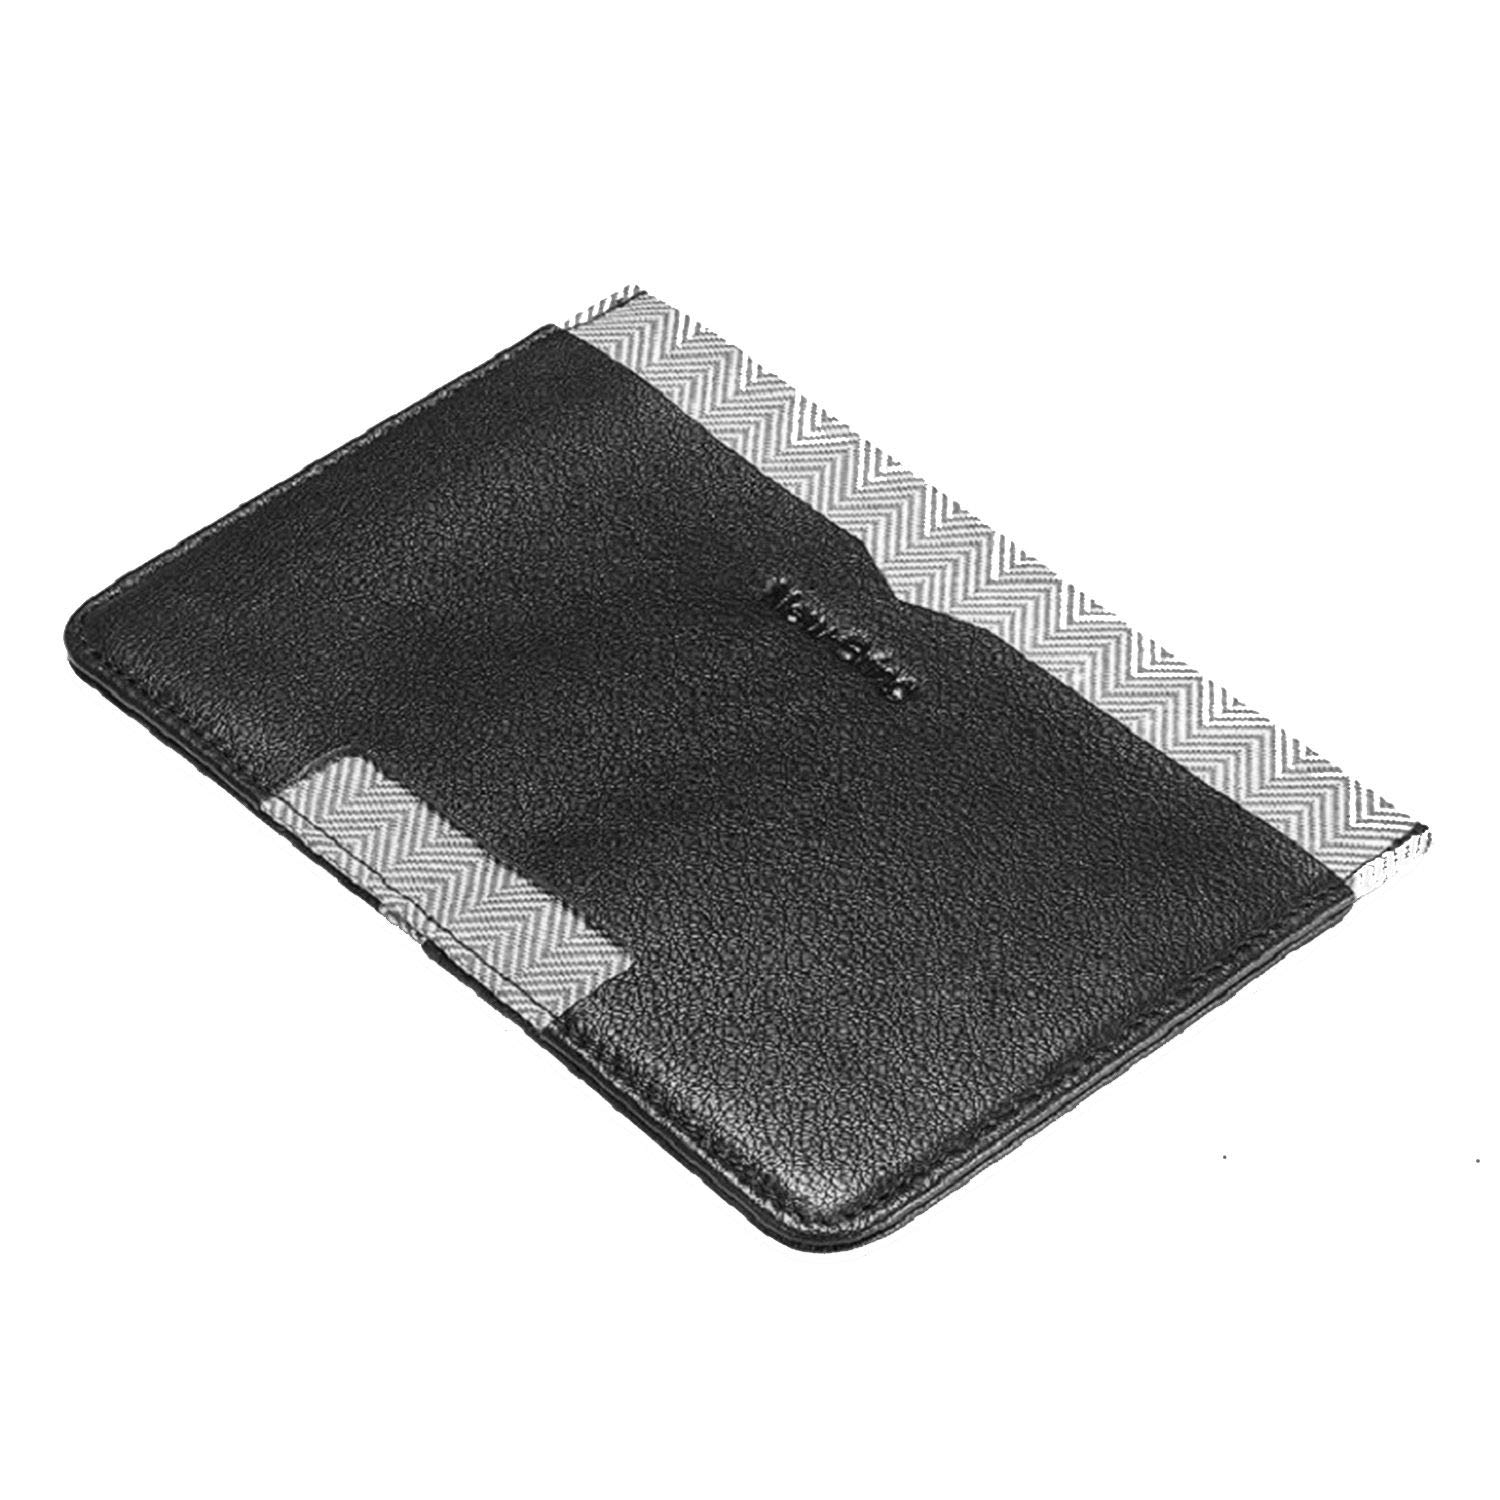 Leather Passport Cover Travel Wallet Men for Credit Card Checkbook Id Holder Ticket Clip Passport Holder,Folding Black